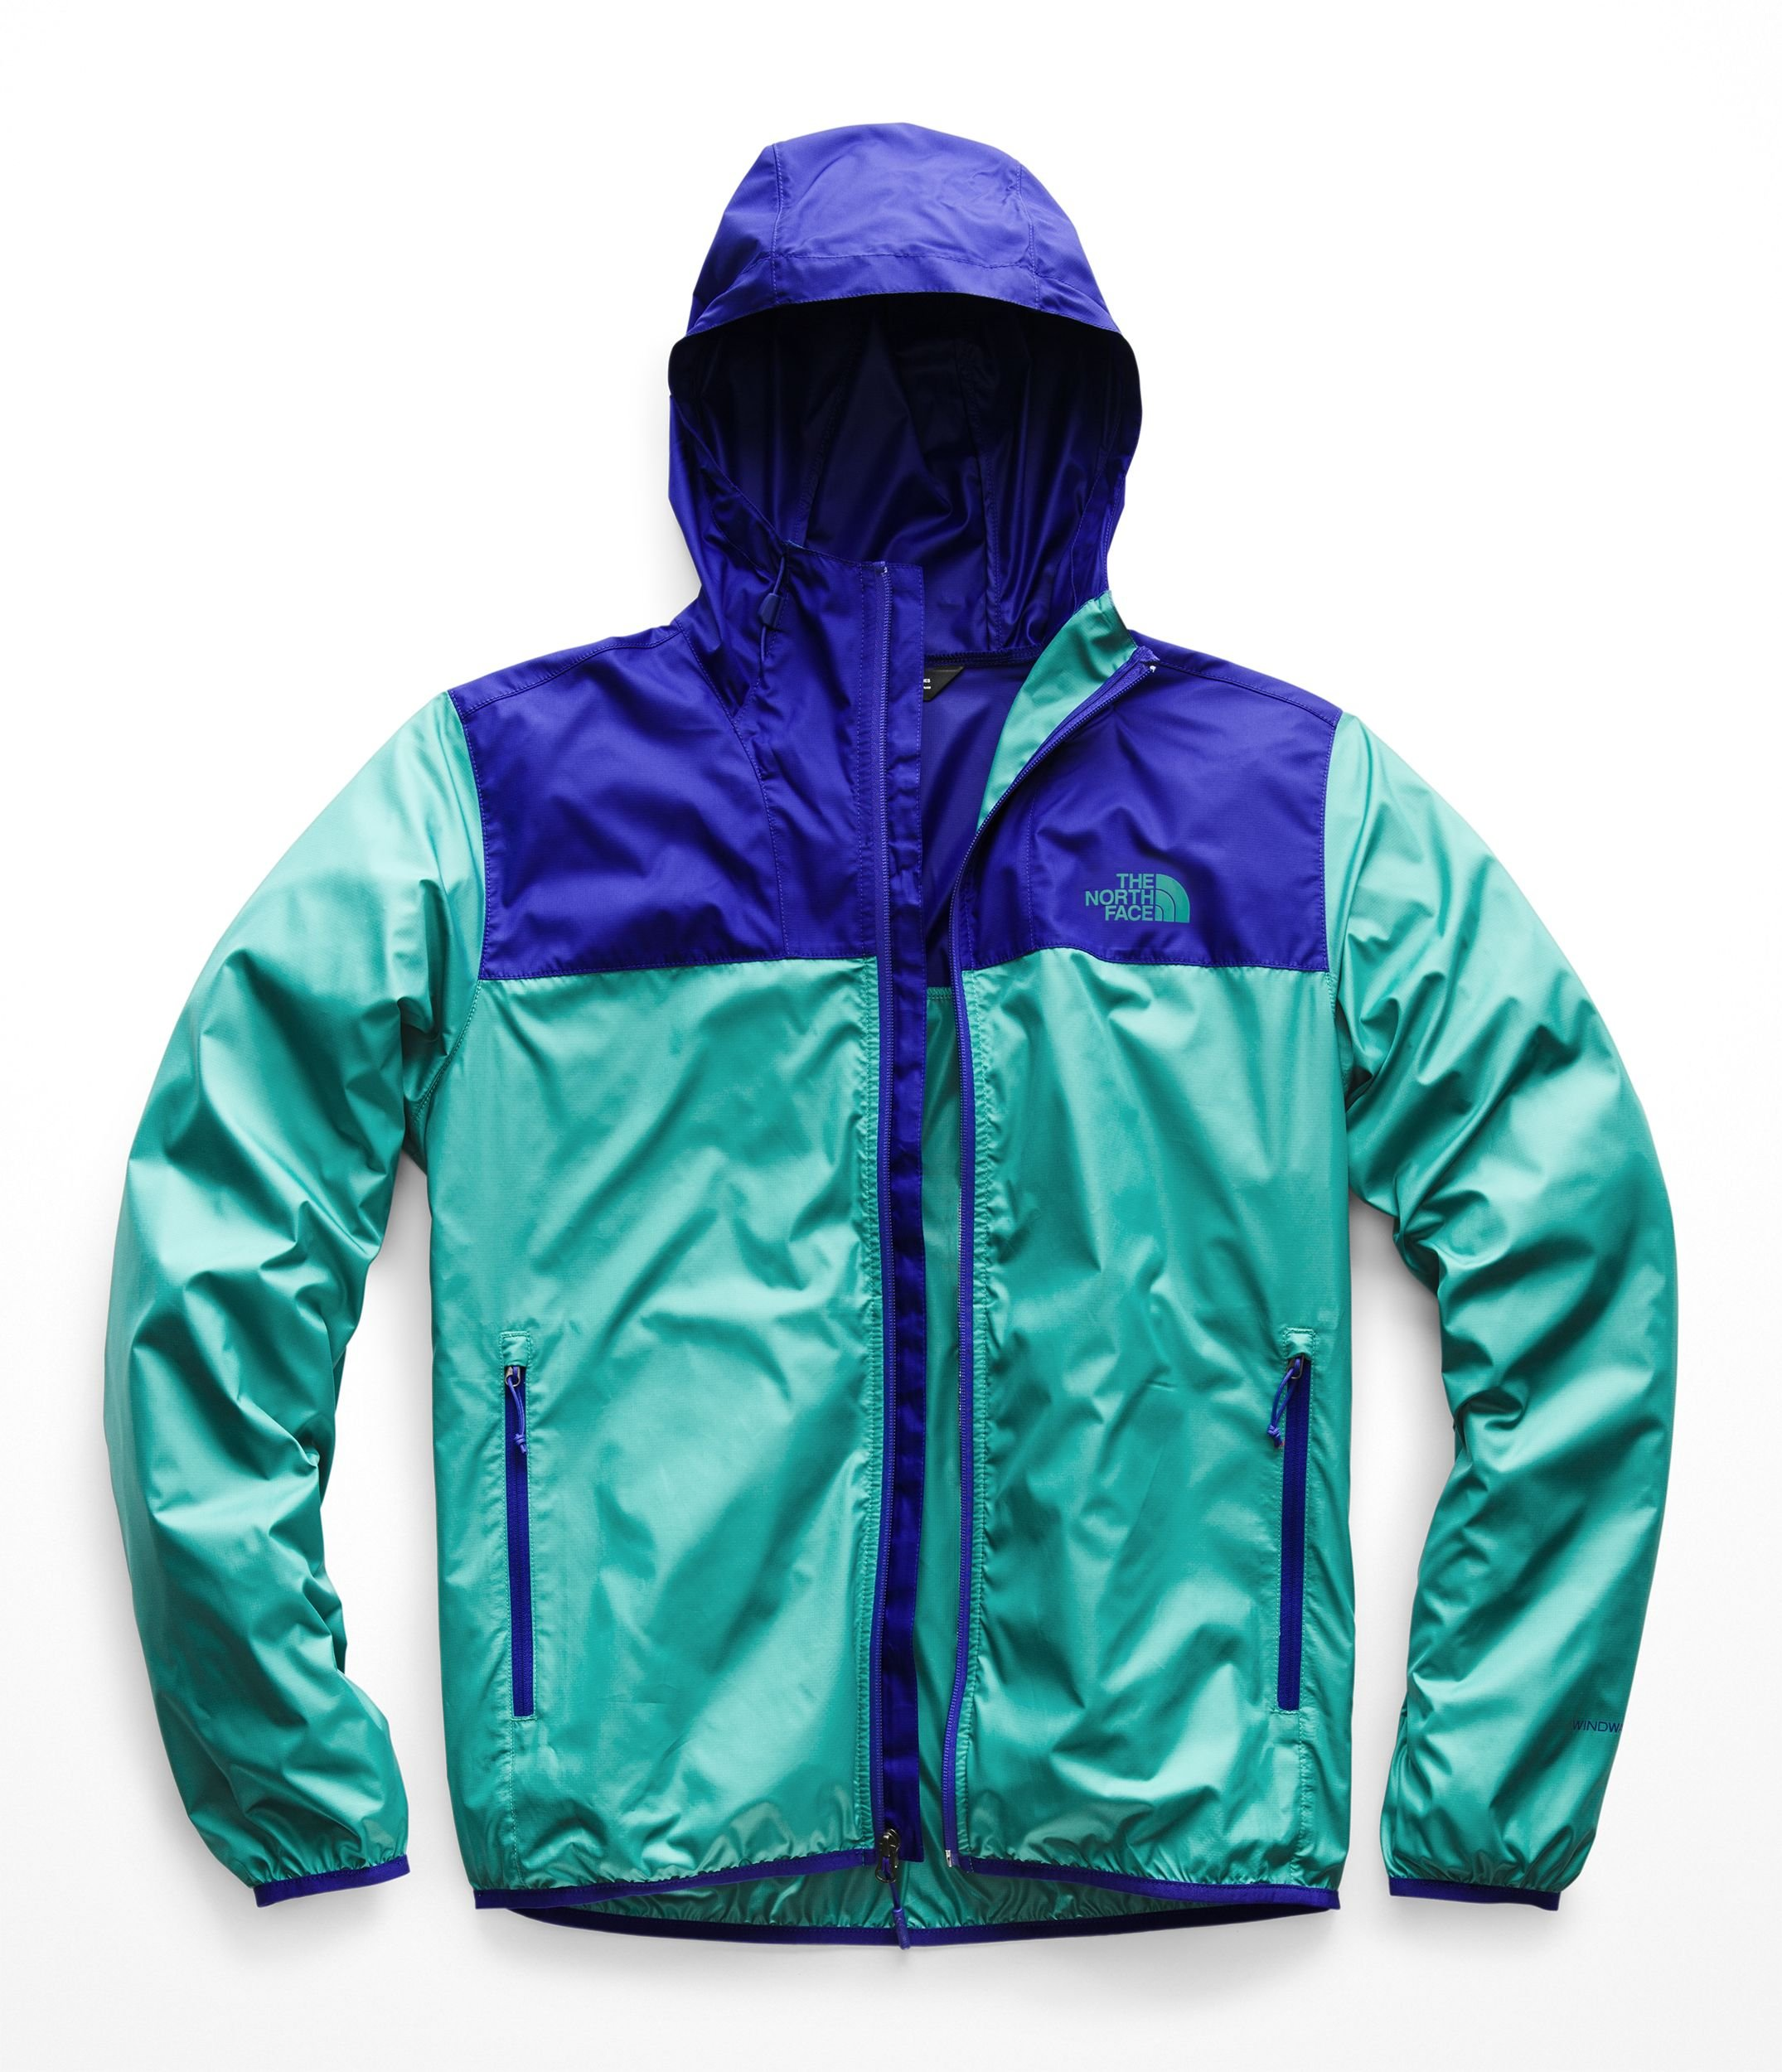 The North Face Men's Cyclone 2 Hoodie - Deep Blue & Porcelain Green - L by The North Face